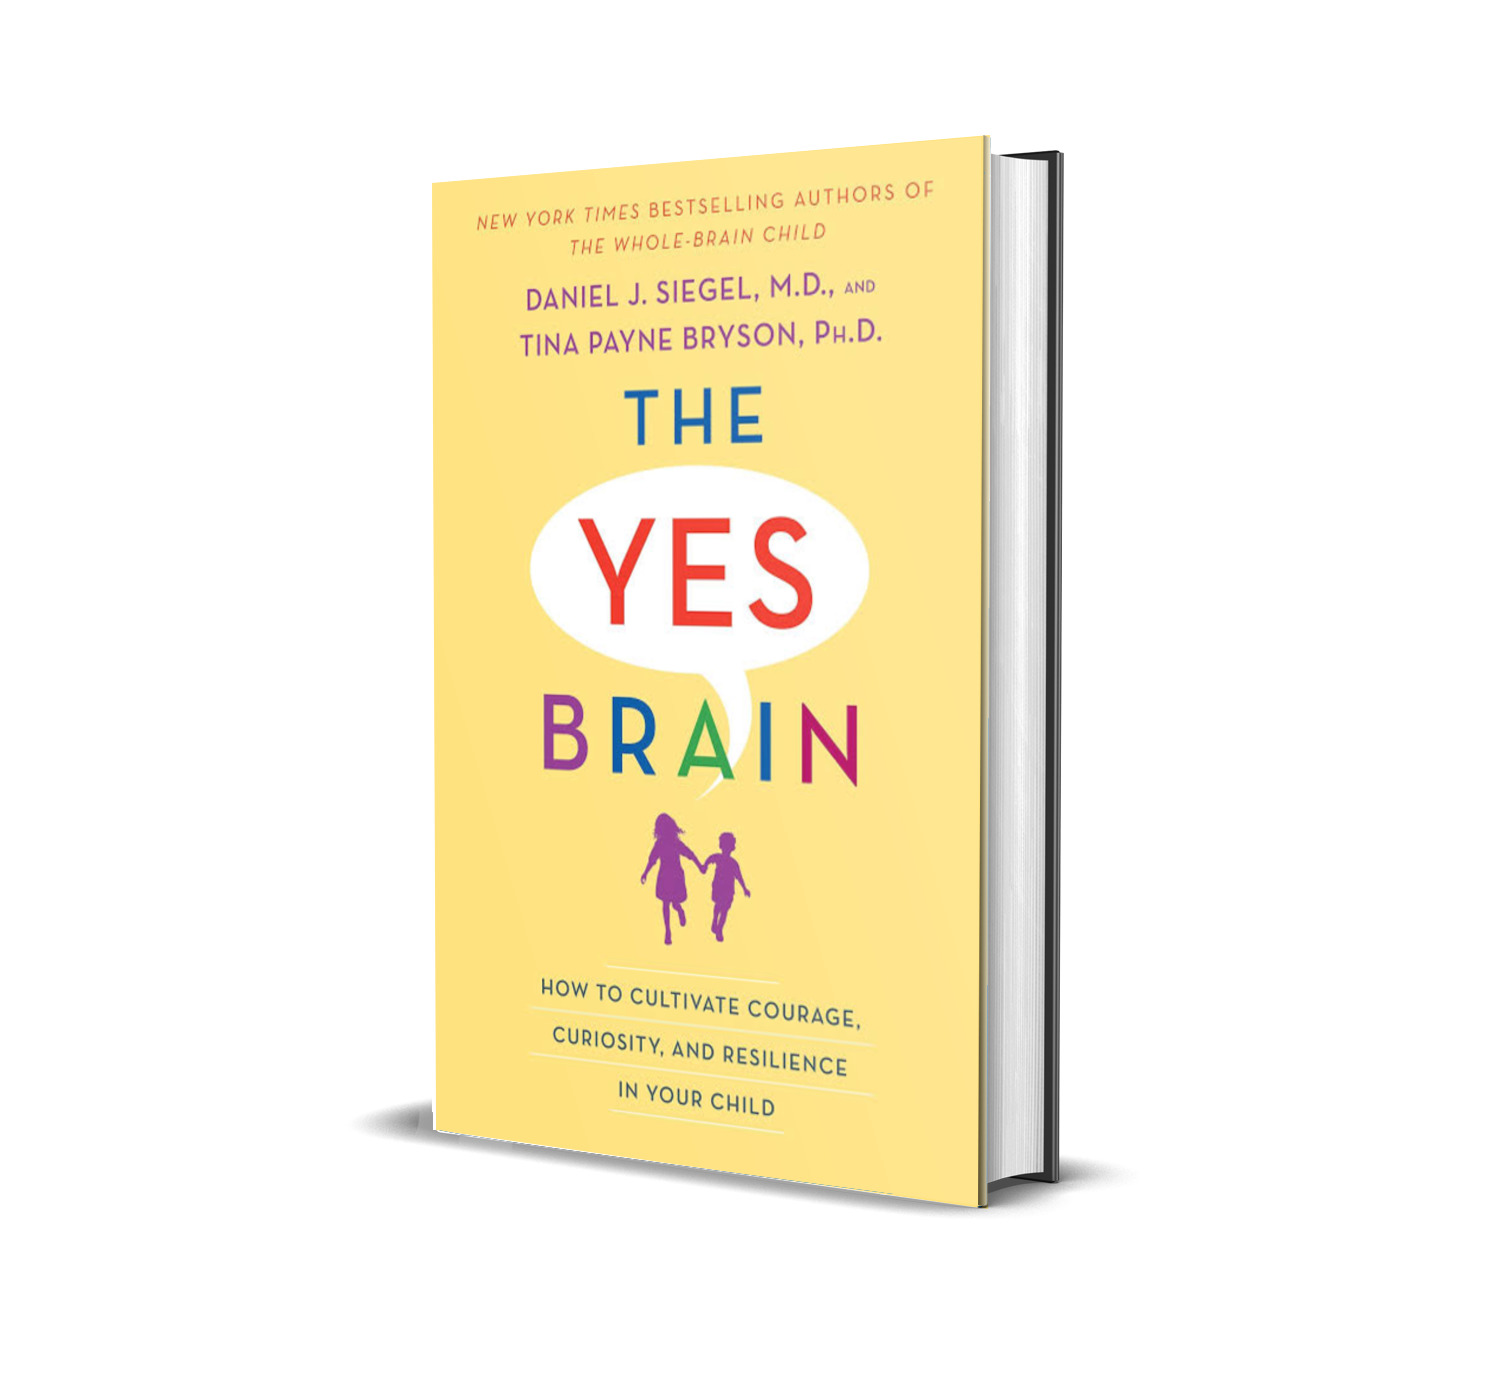 The yes brain:how to cultivate courage, curiosity and resilience in your child- Daniel Siegel, Tina Payne